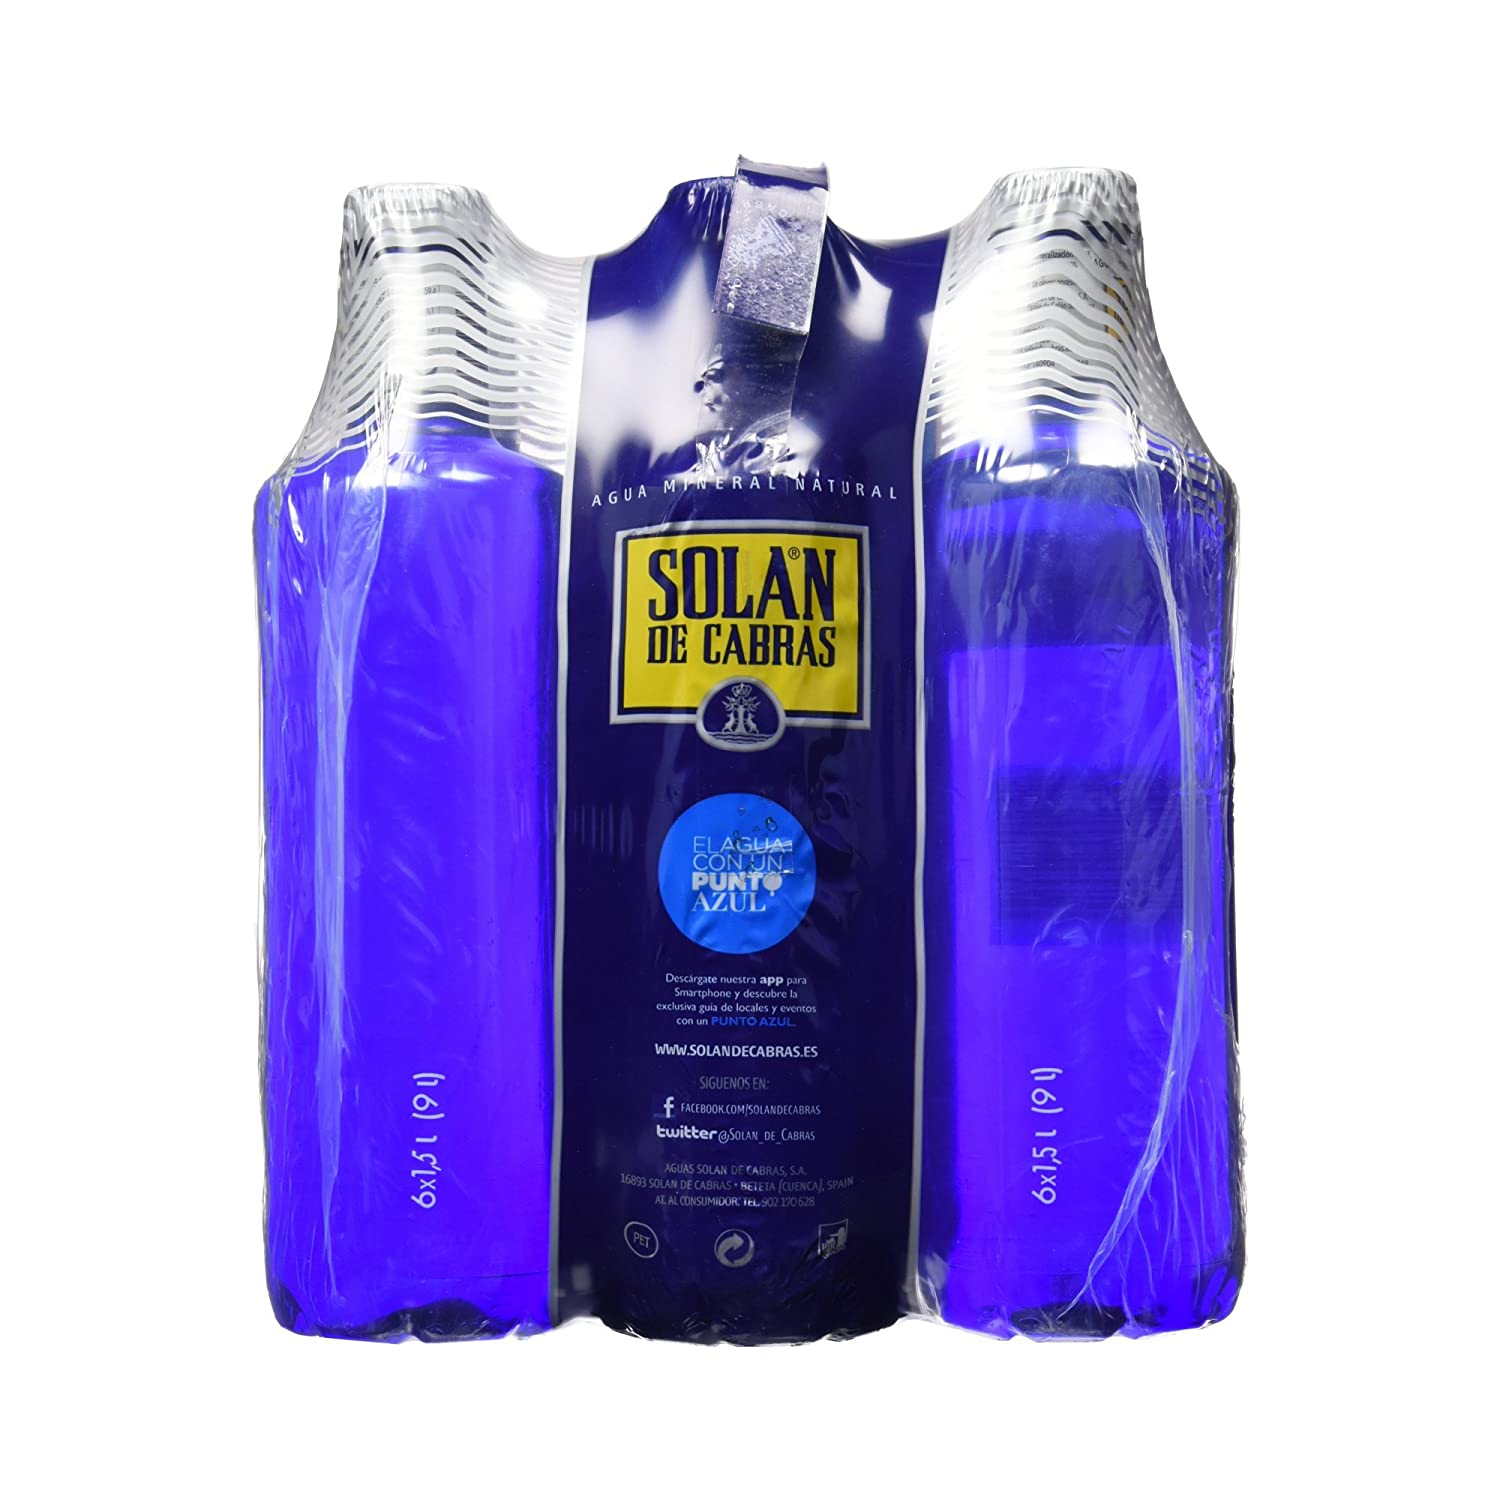 Solán De Cabras Agua Mineral Natural - Pack de 6 x 1,5 l - Total: 9000 ml: Amazon.es: Amazon Pantry